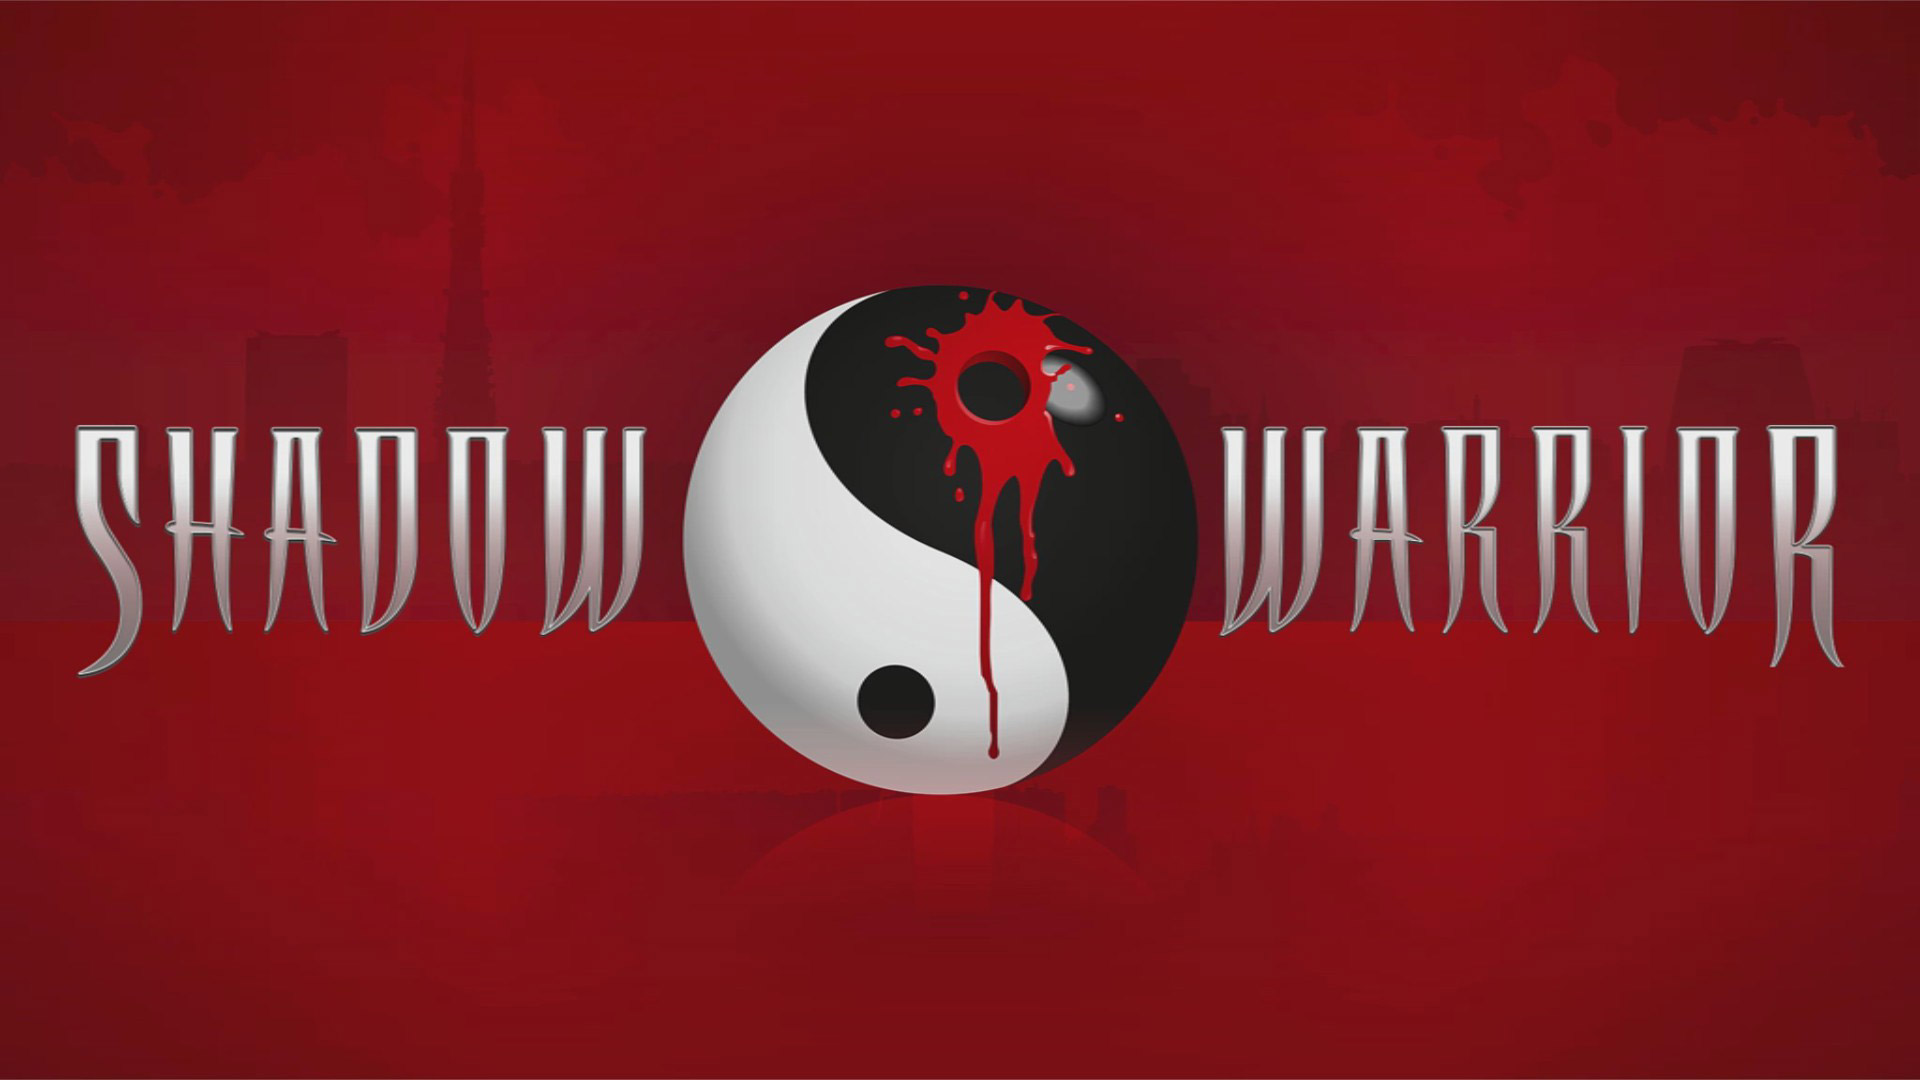 Free Shadow Warrior Classic Wallpaper in 1920x1080